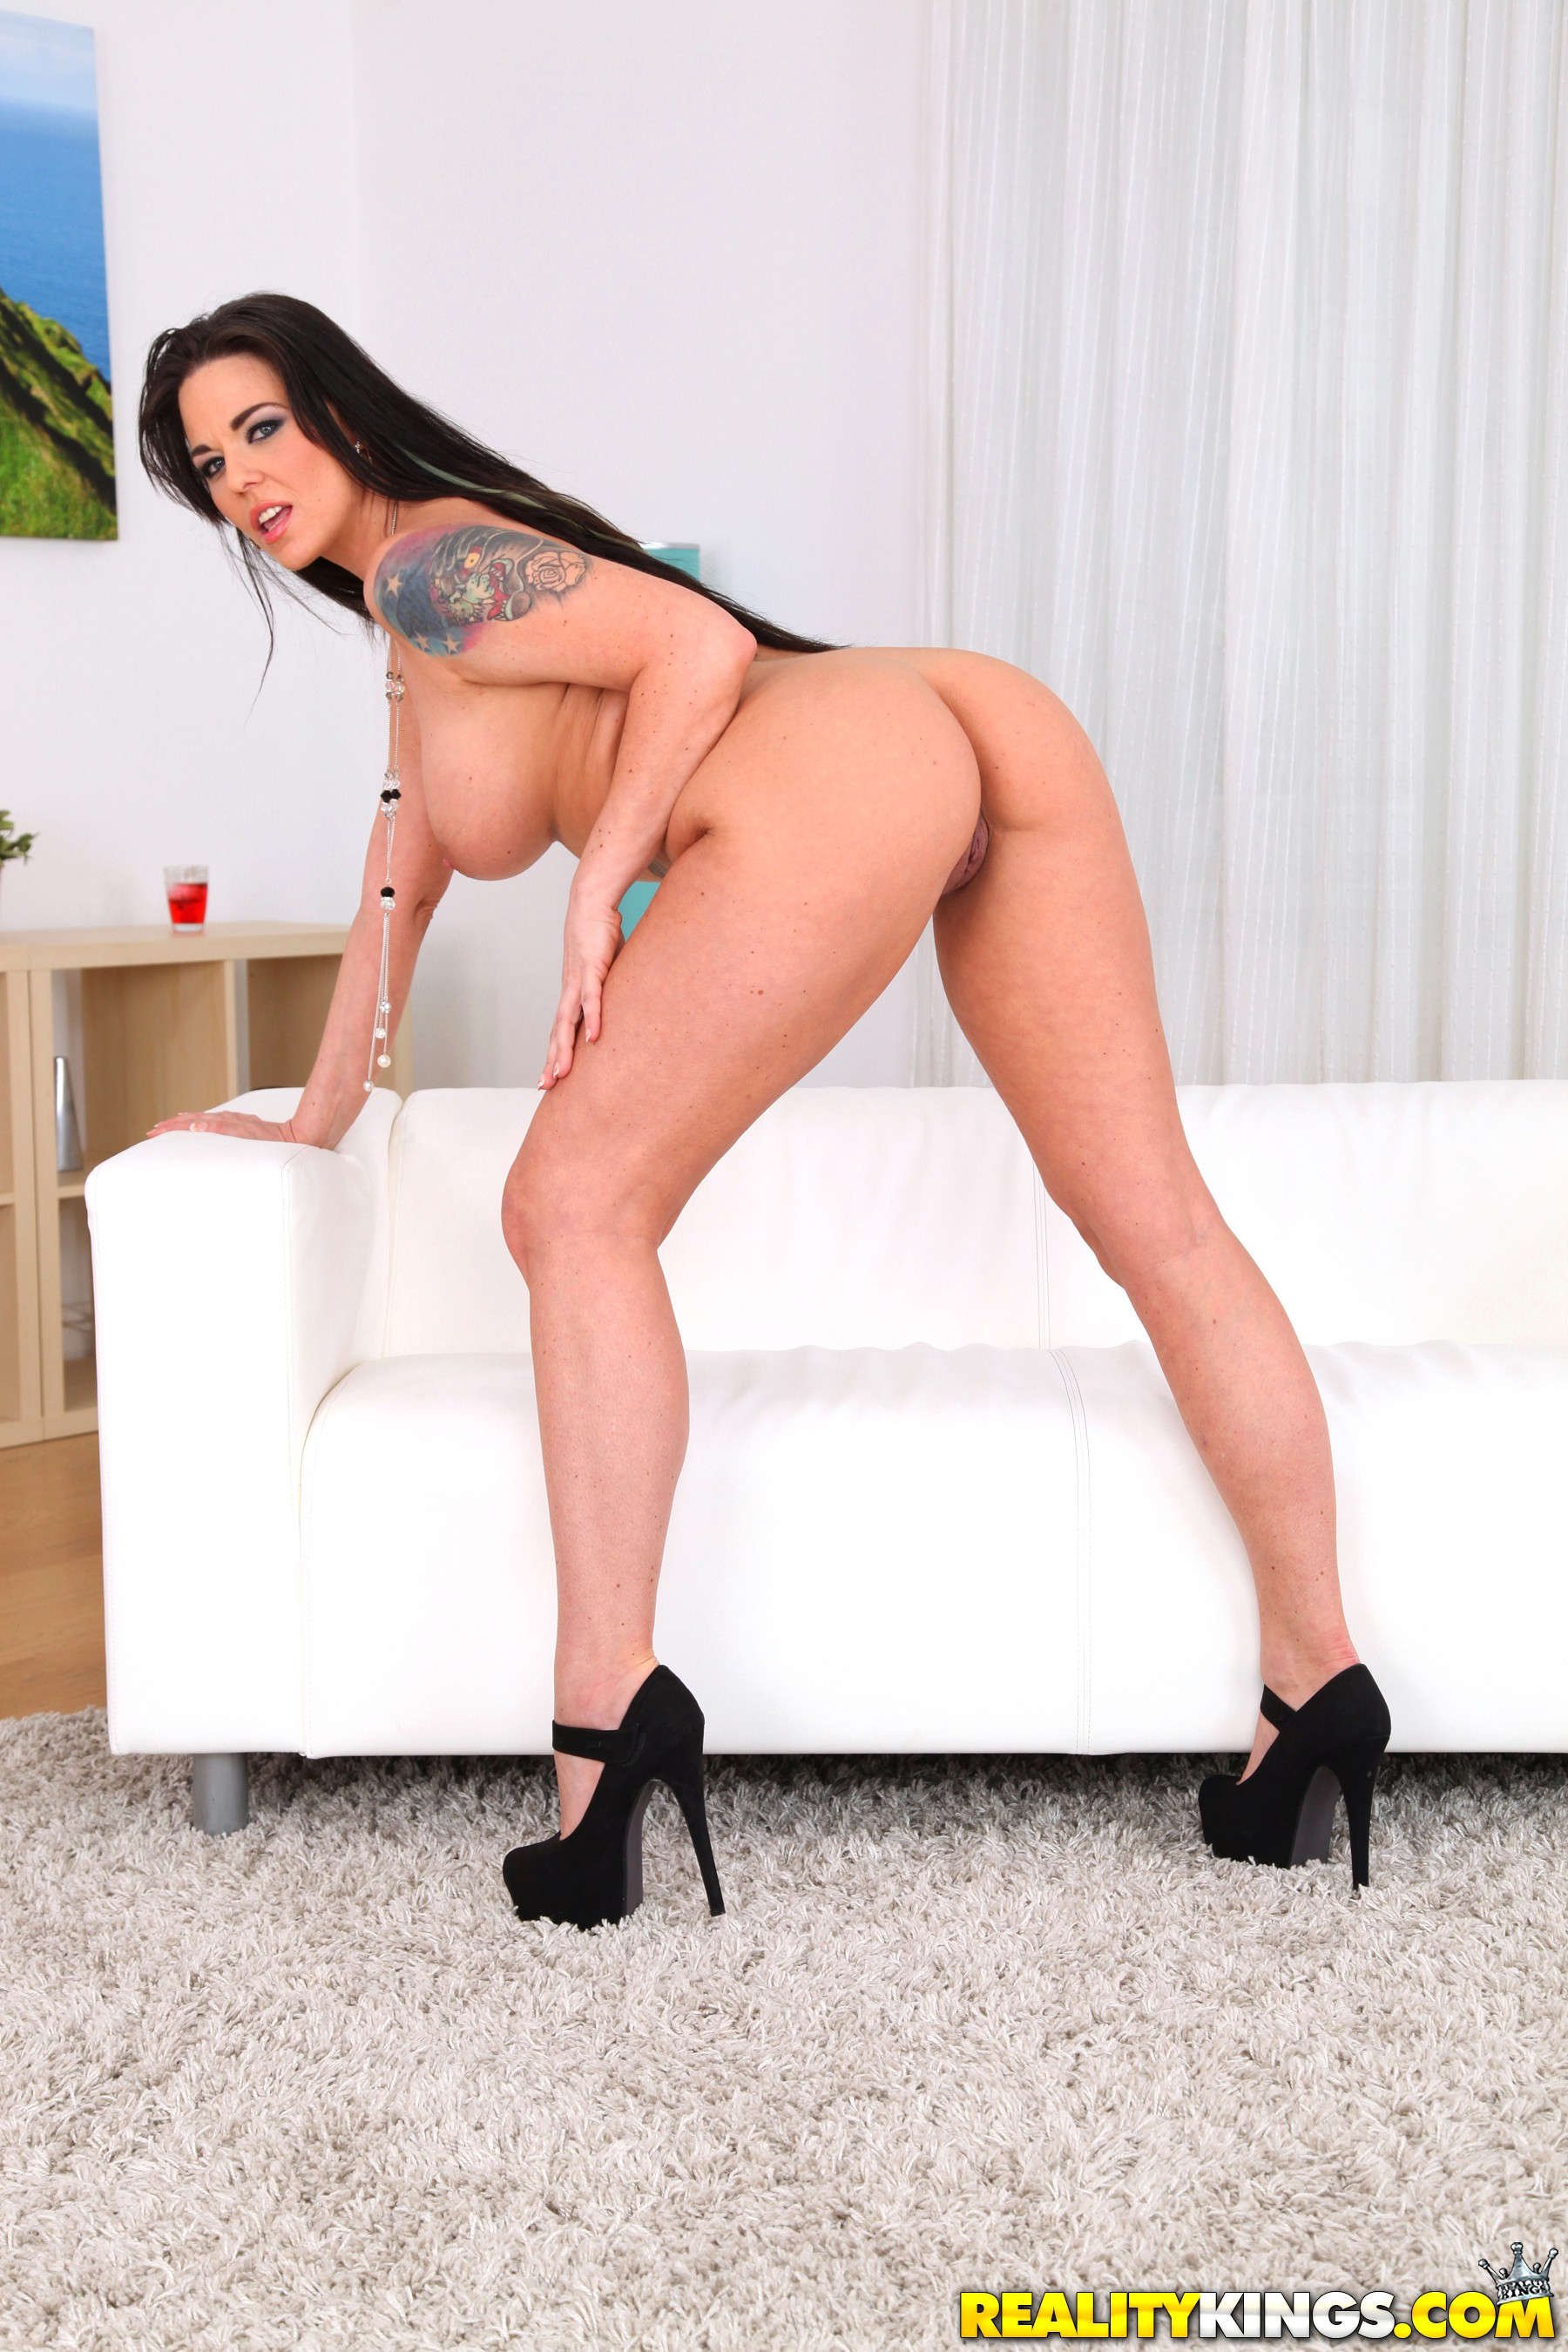 Ass, Big Tits, Brunette, Couch, Heels, Ivory, Long Hair, MILF, Solo, Tattoo picture